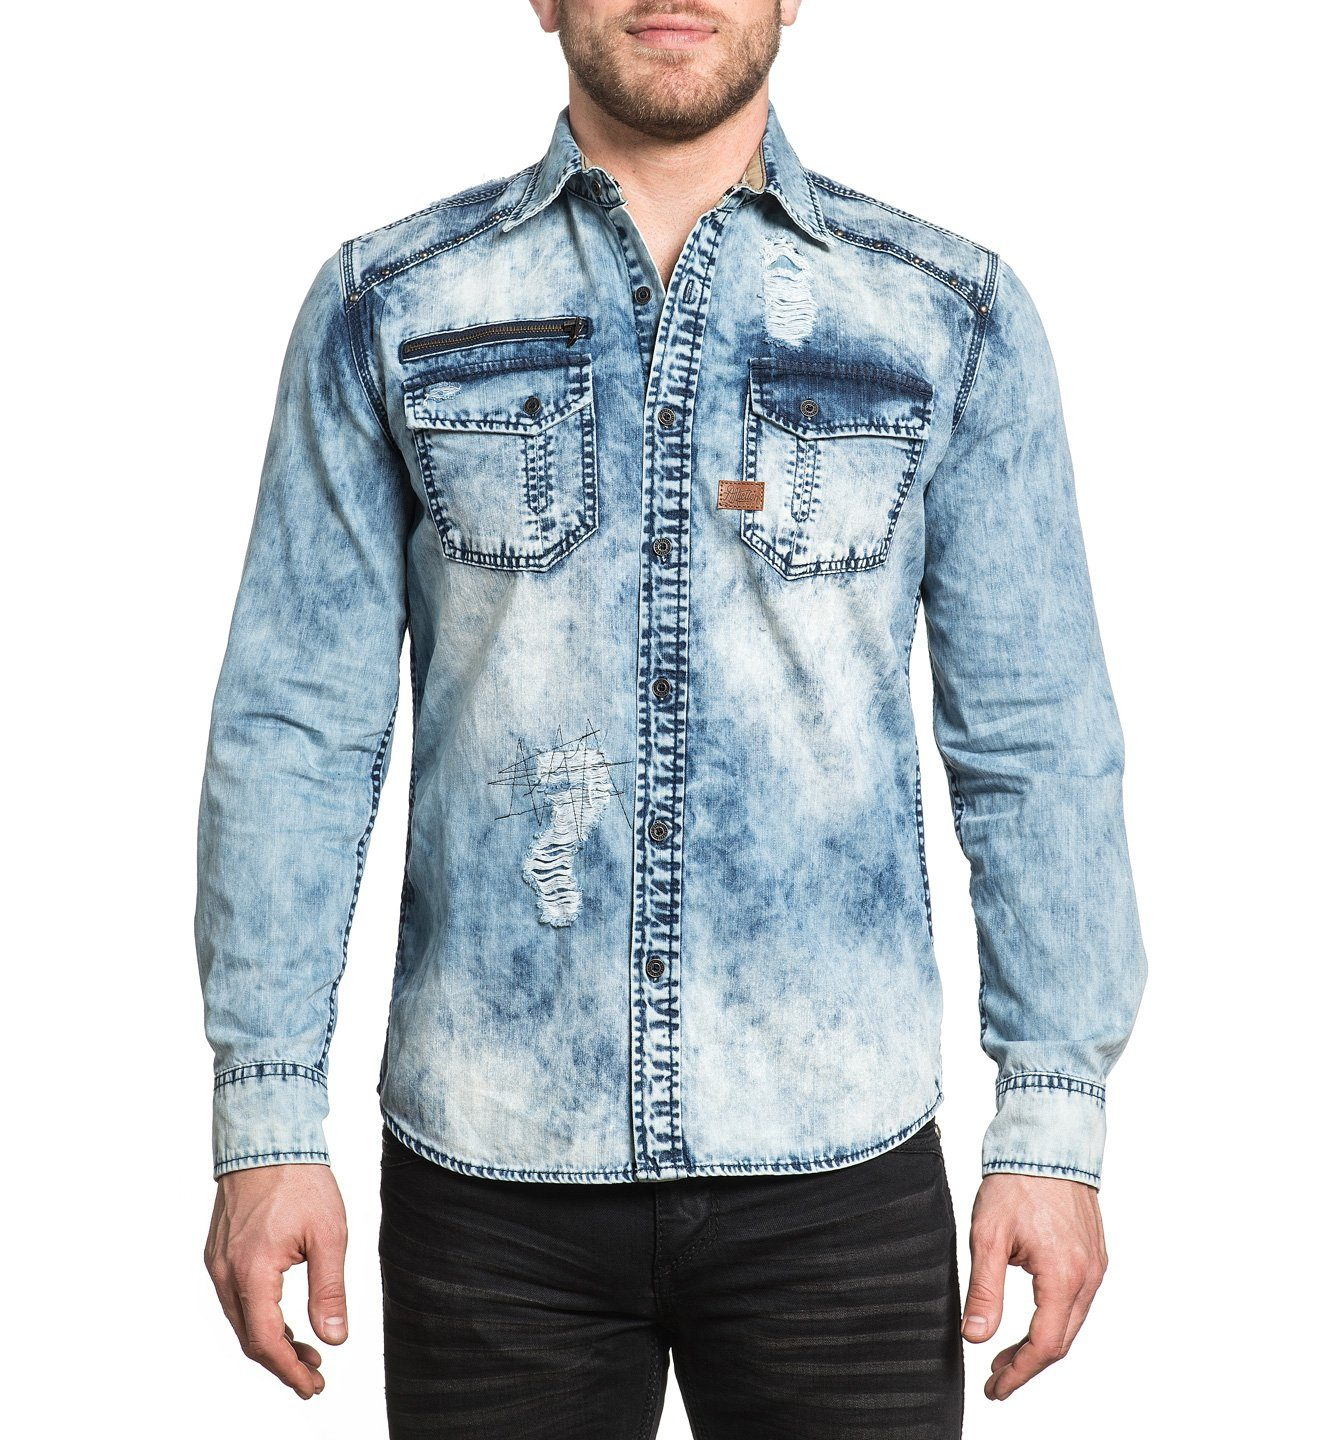 Union - Mens Button Down Tops - Affliction Clothing